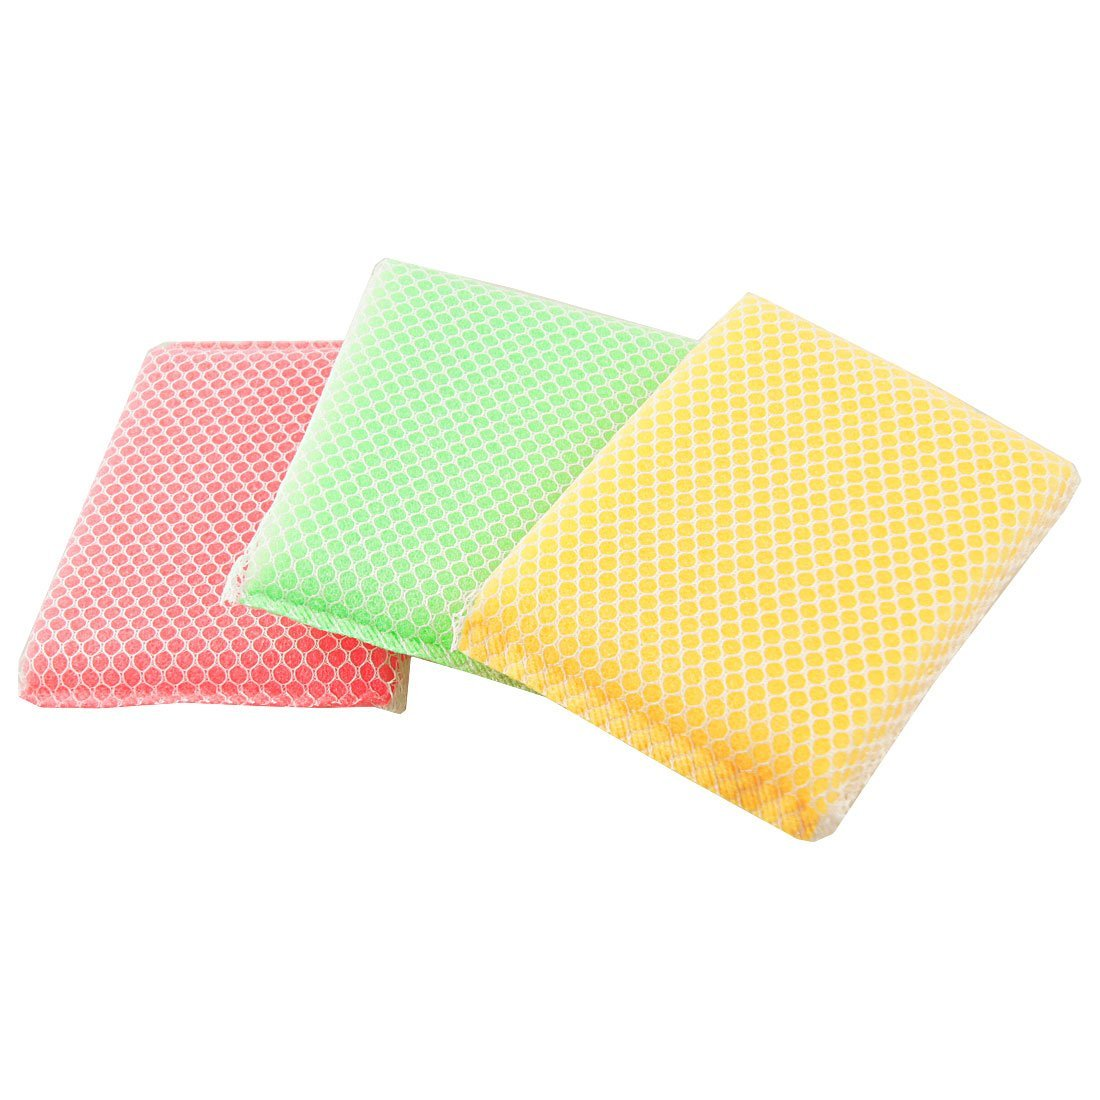 TOOGOO(R) Kitchen Dish Bowl Yellow Green red Scouring Sponge Cleaning Pads 3 Pcs